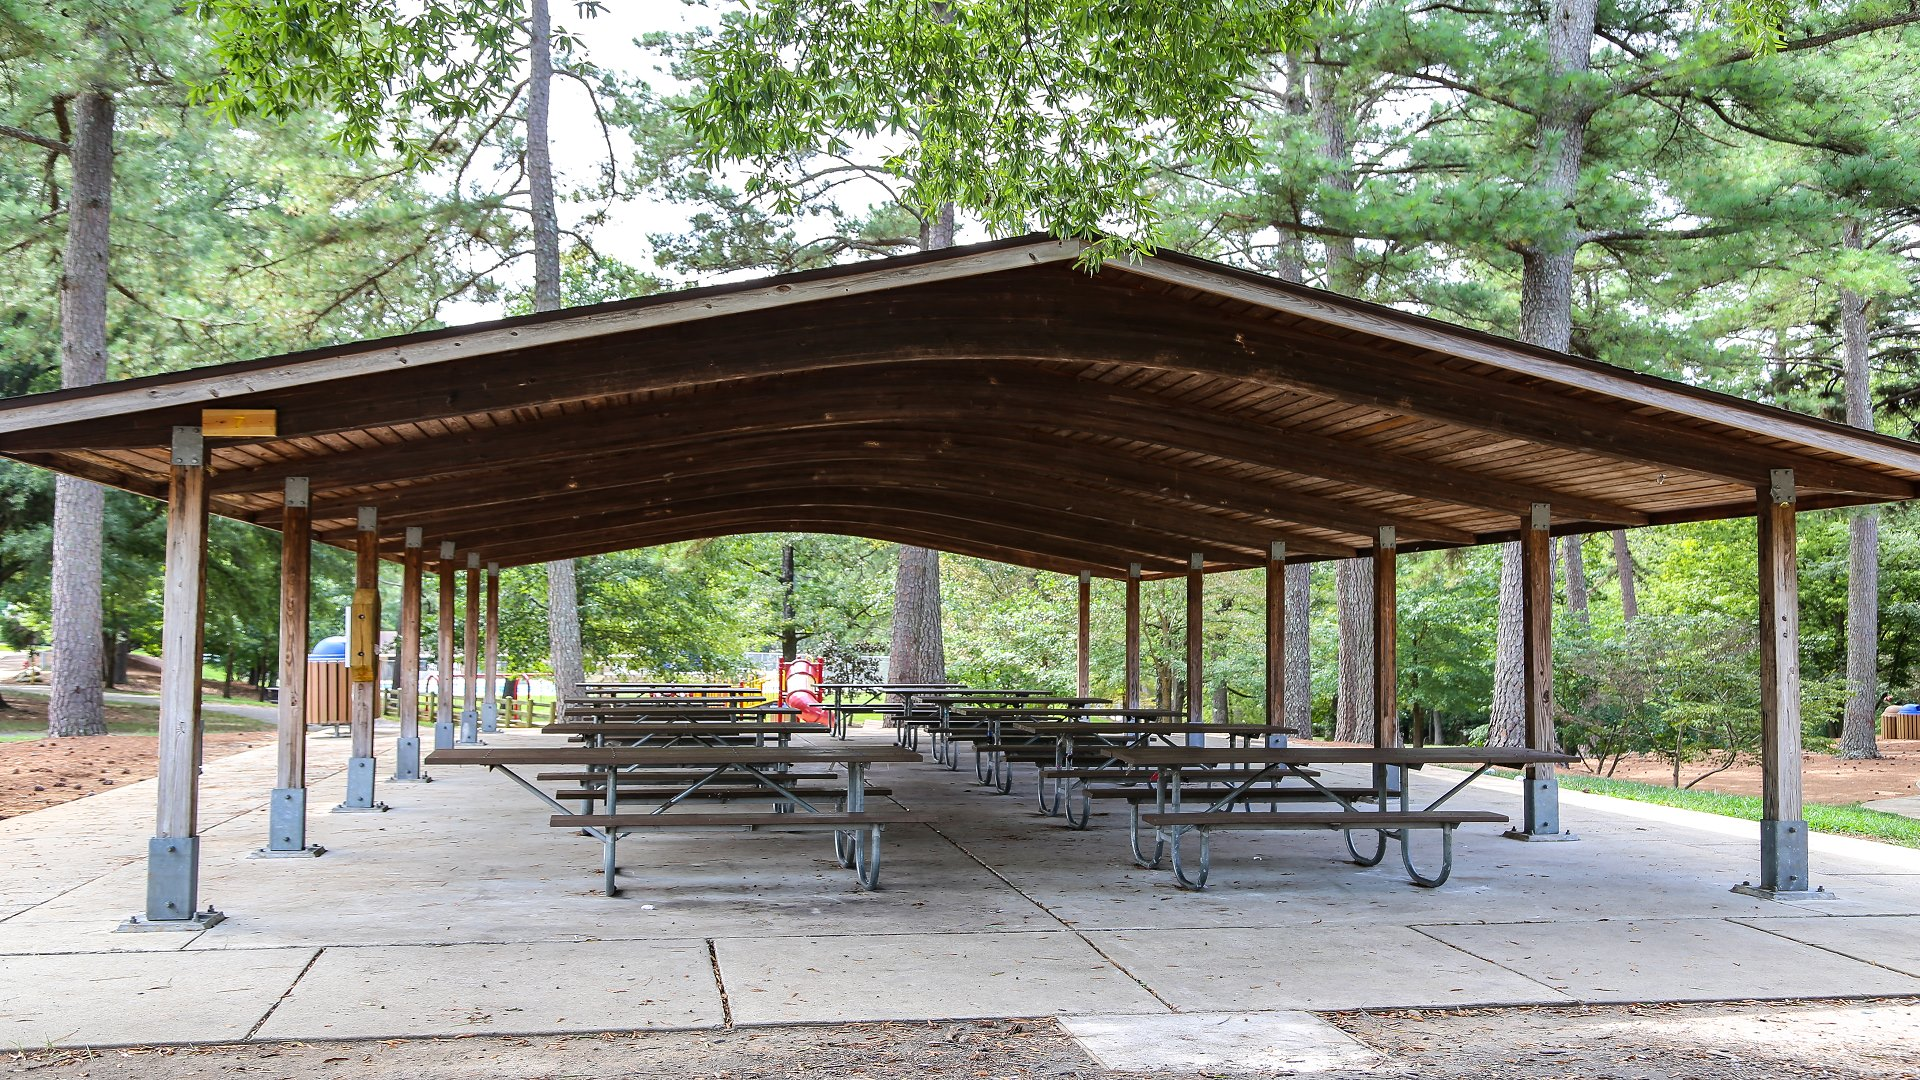 A second larger picnic shelter with 13 tables at Biltmore Hills Park